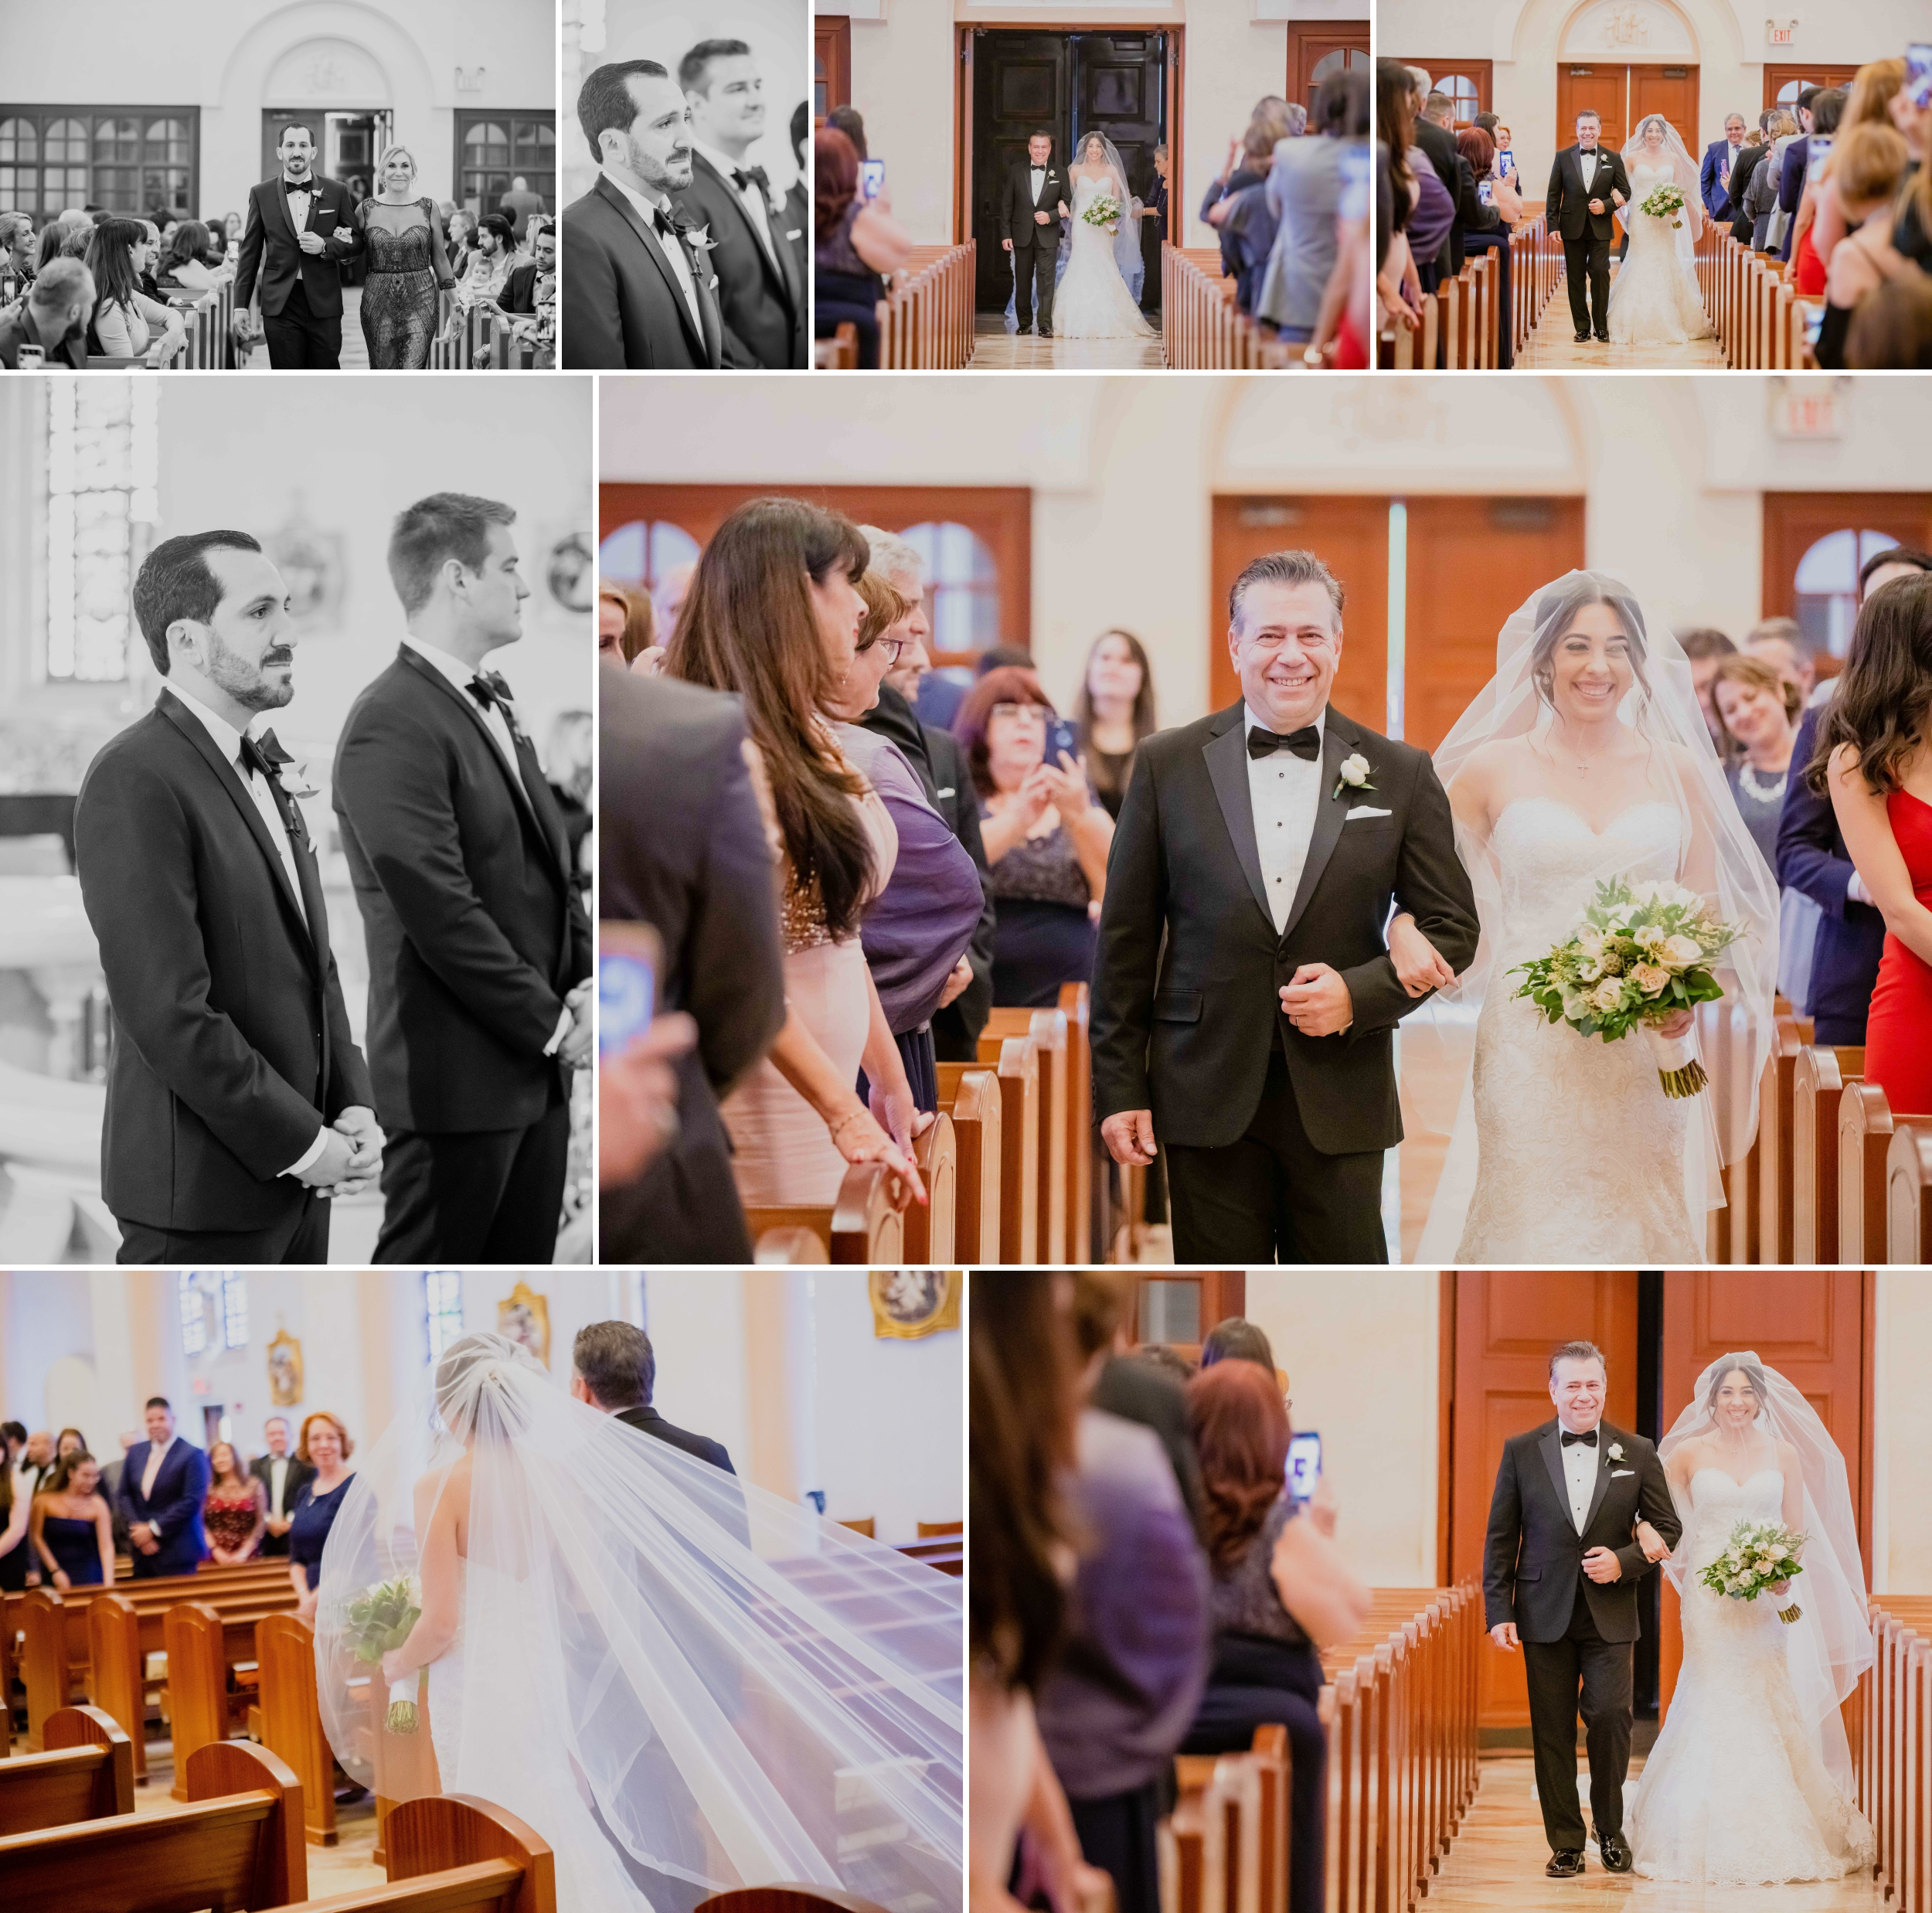 Wedding - St Patrick Church - The Bath Club - Santy Martinez Photography 21.jpg